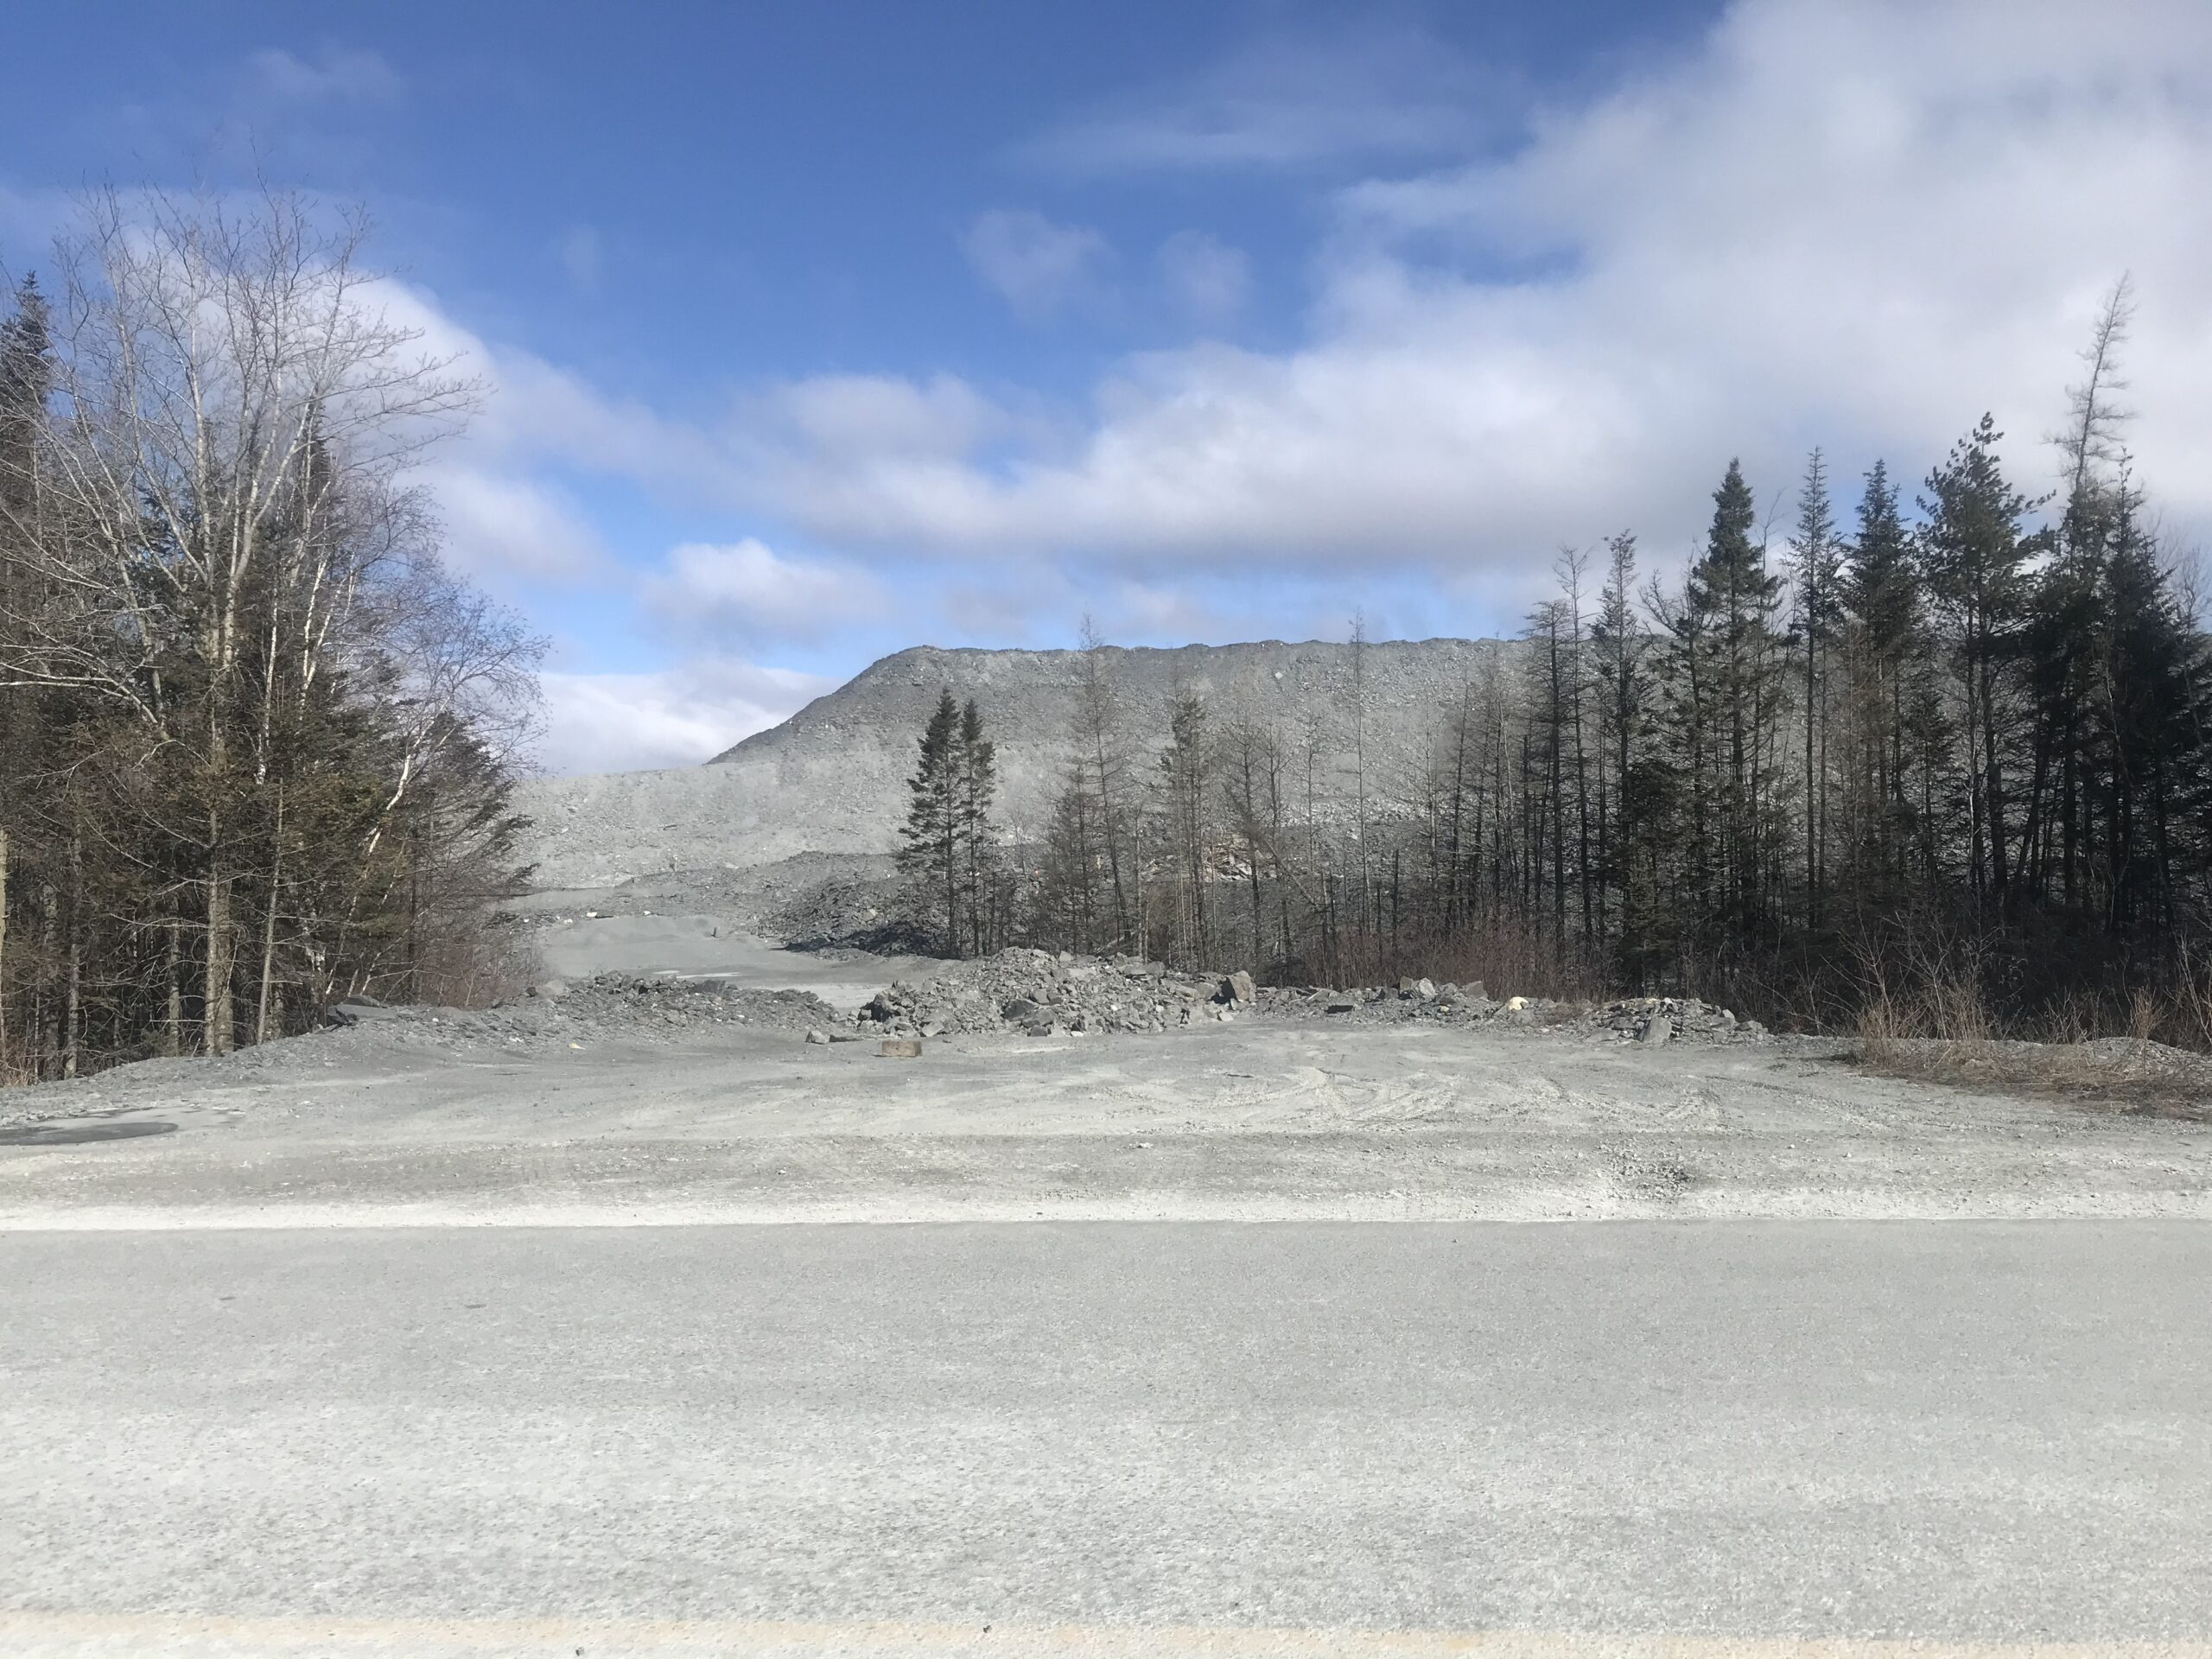 A photo of a grey dirt road in a mine site, with trees on both sides. The road leads to a massive pile of grey rock and dust.